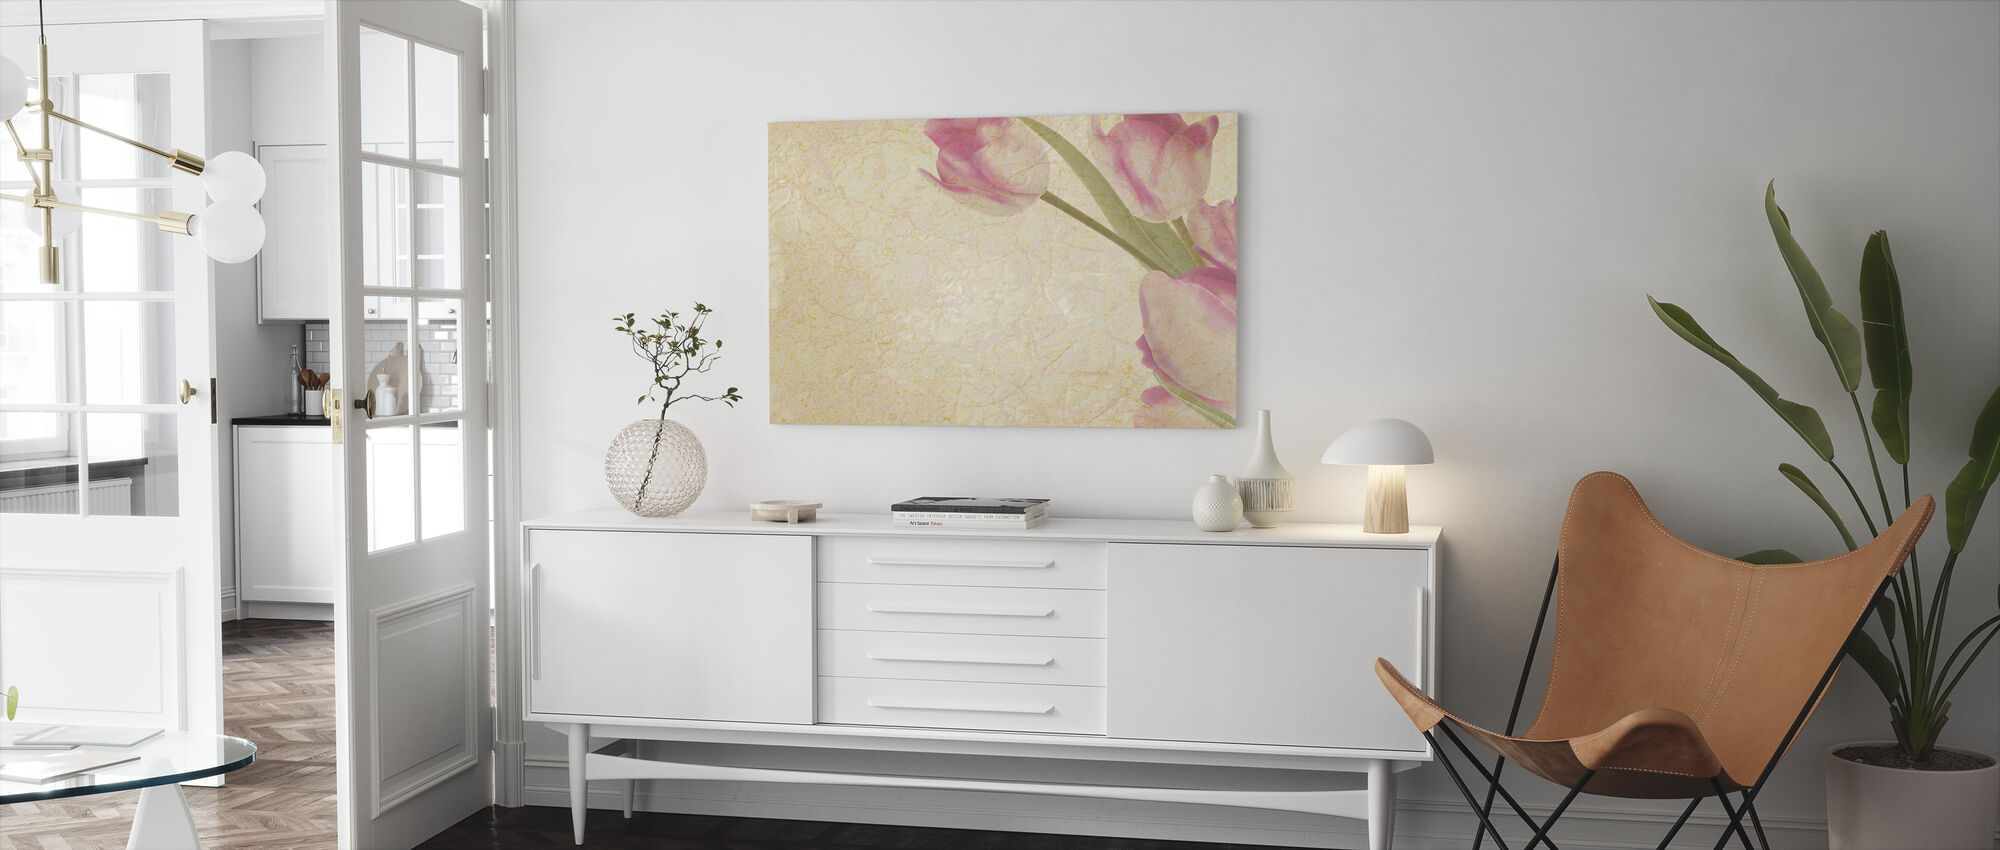 Vintage Tulips - Canvas print - Living Room